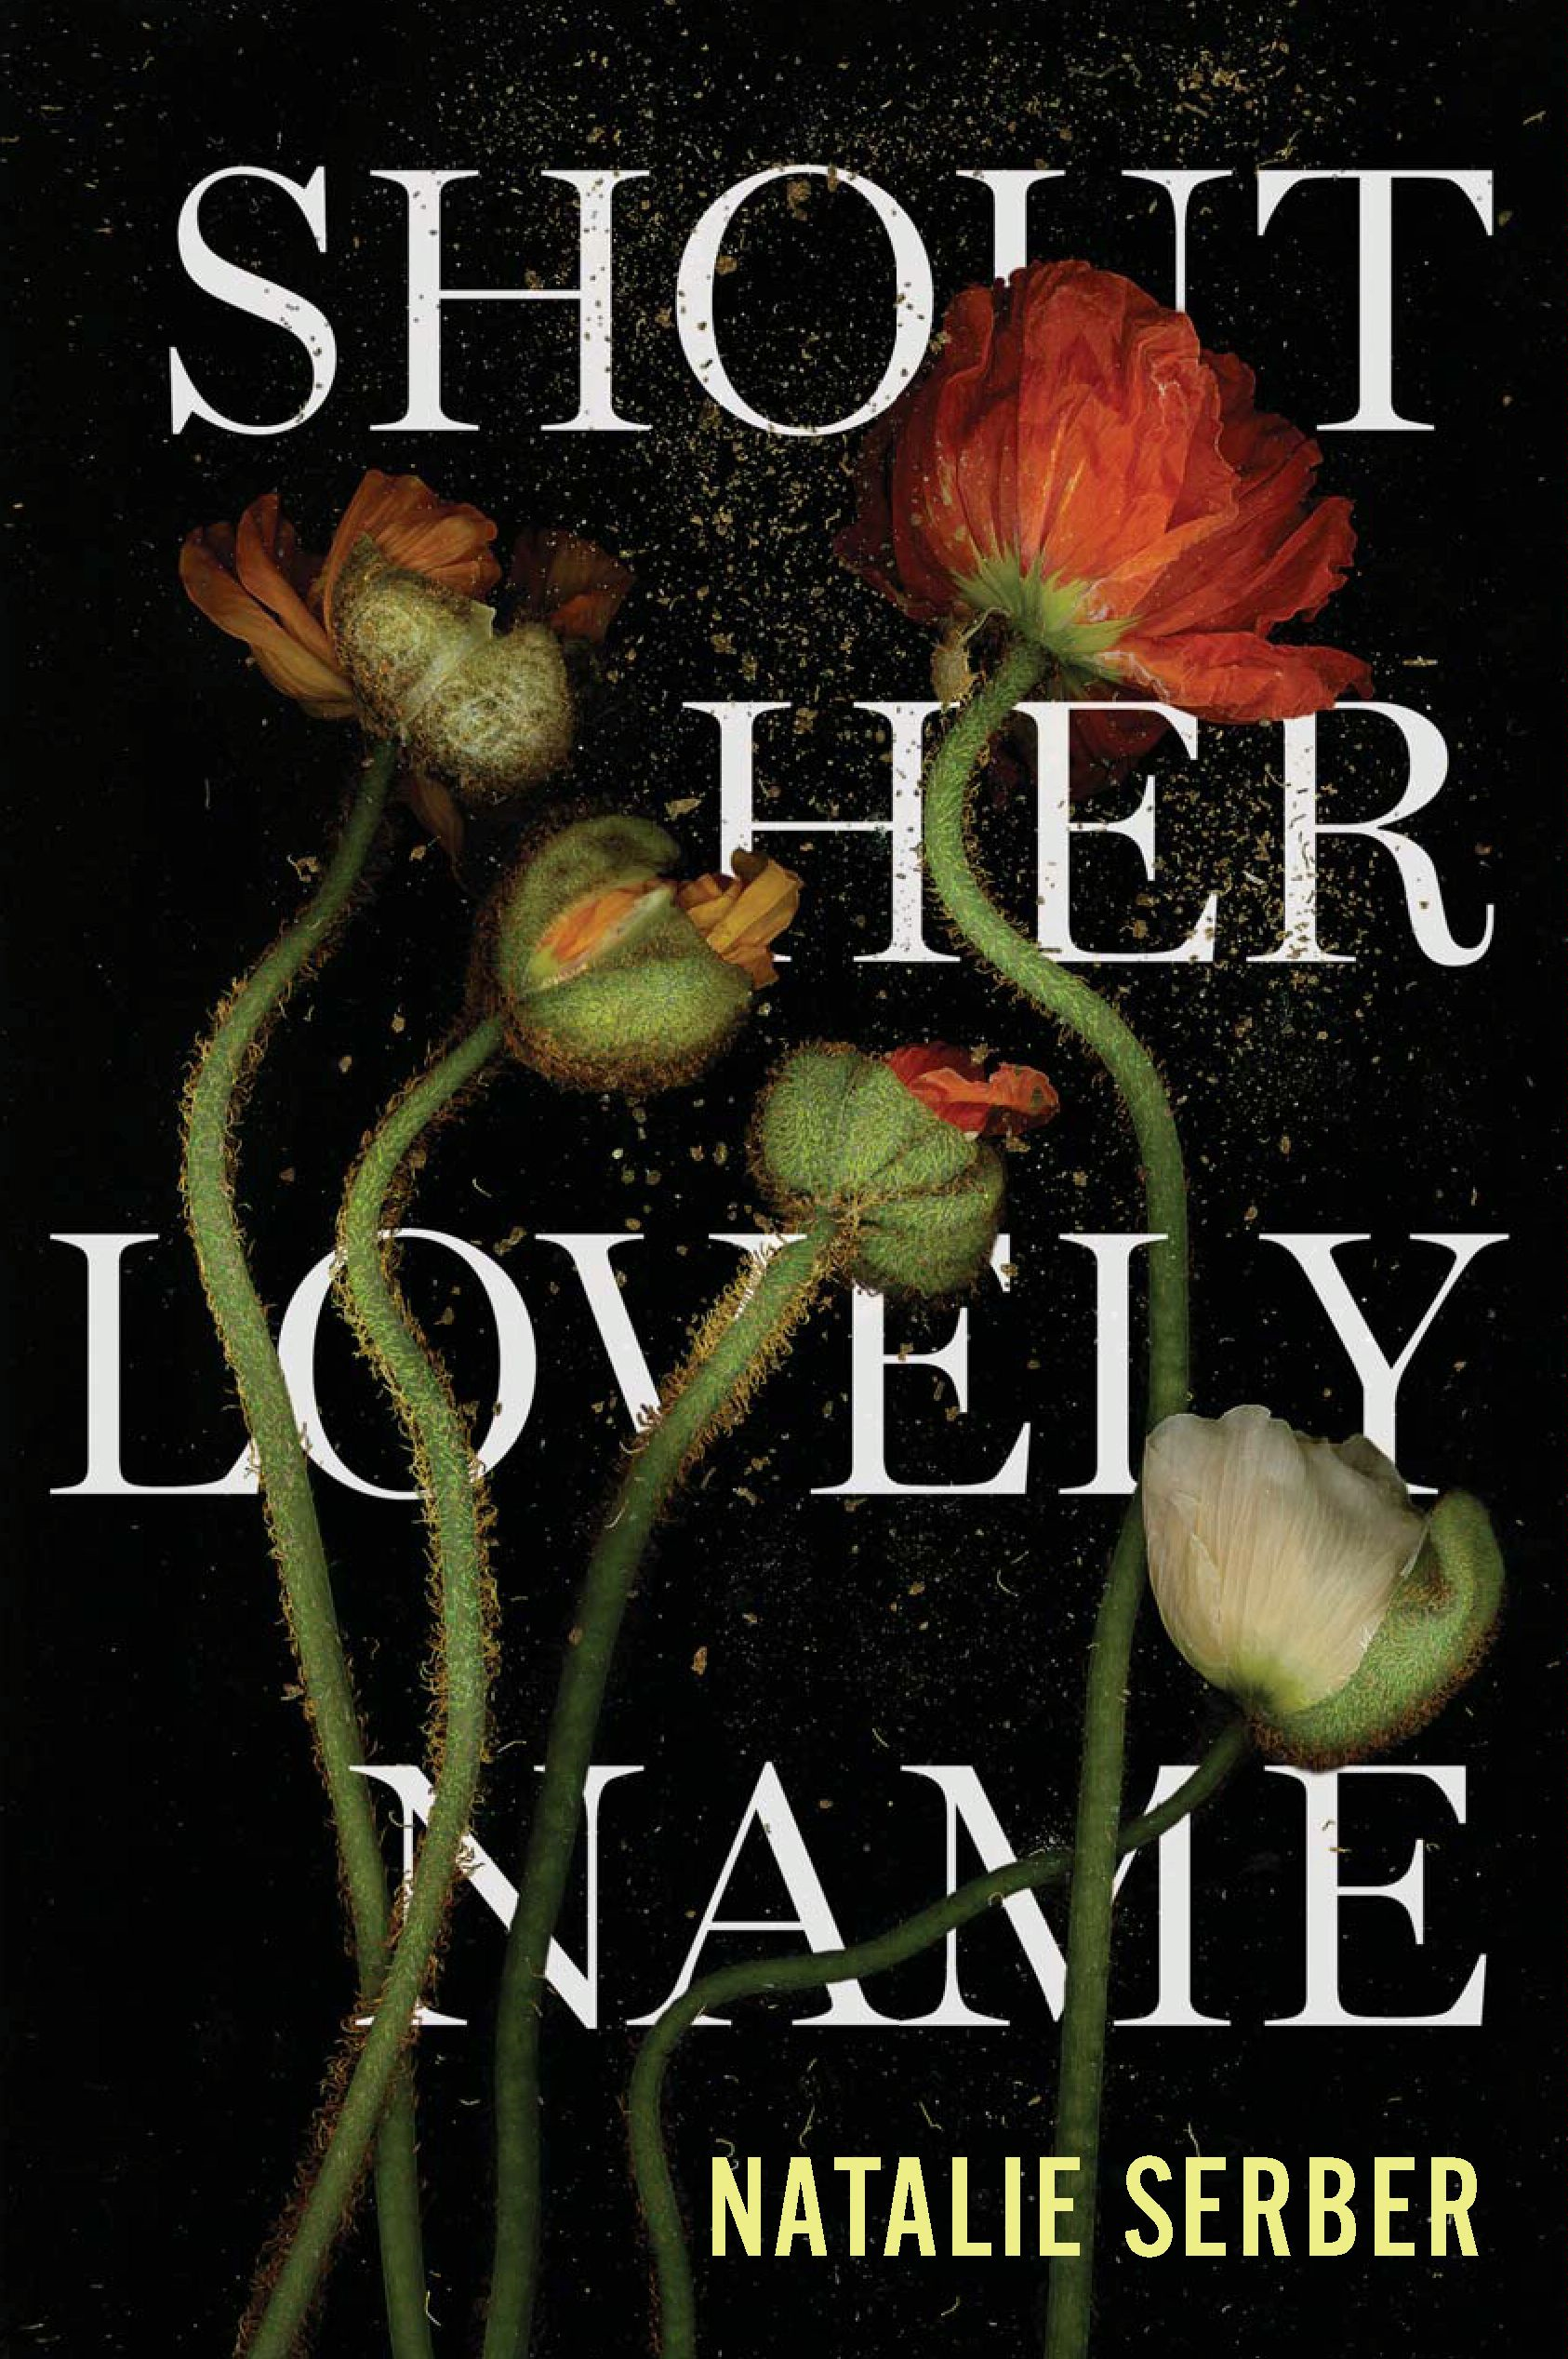 Shout Her Lovely Name By: Natalie Serber